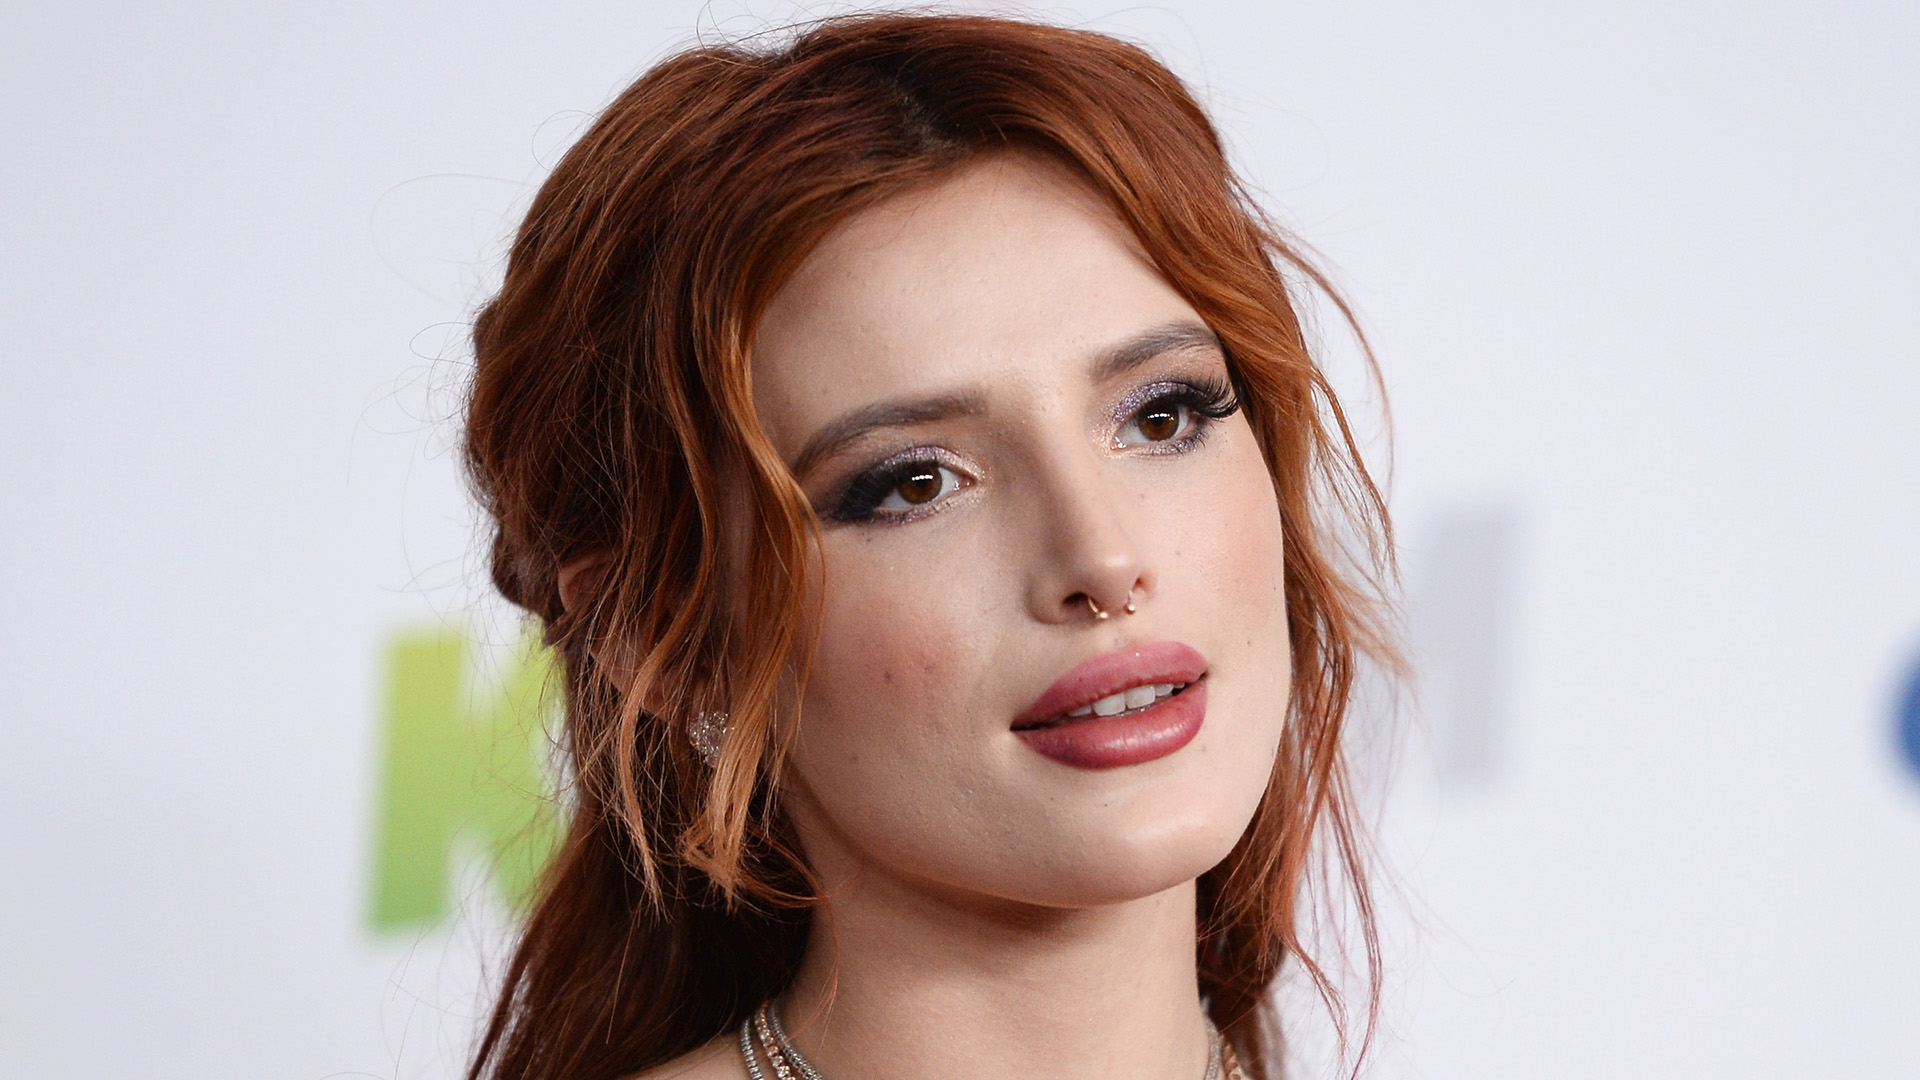 INGLEWOOD, CA - DECEMBER 01: Actress Bella Thorne arrives at 102.7 KIIS FM's Jingle Ball 2017 at The Forum on December 1, 2017 in Inglewood, California. (Photo by Amanda Edwards/WireImage)